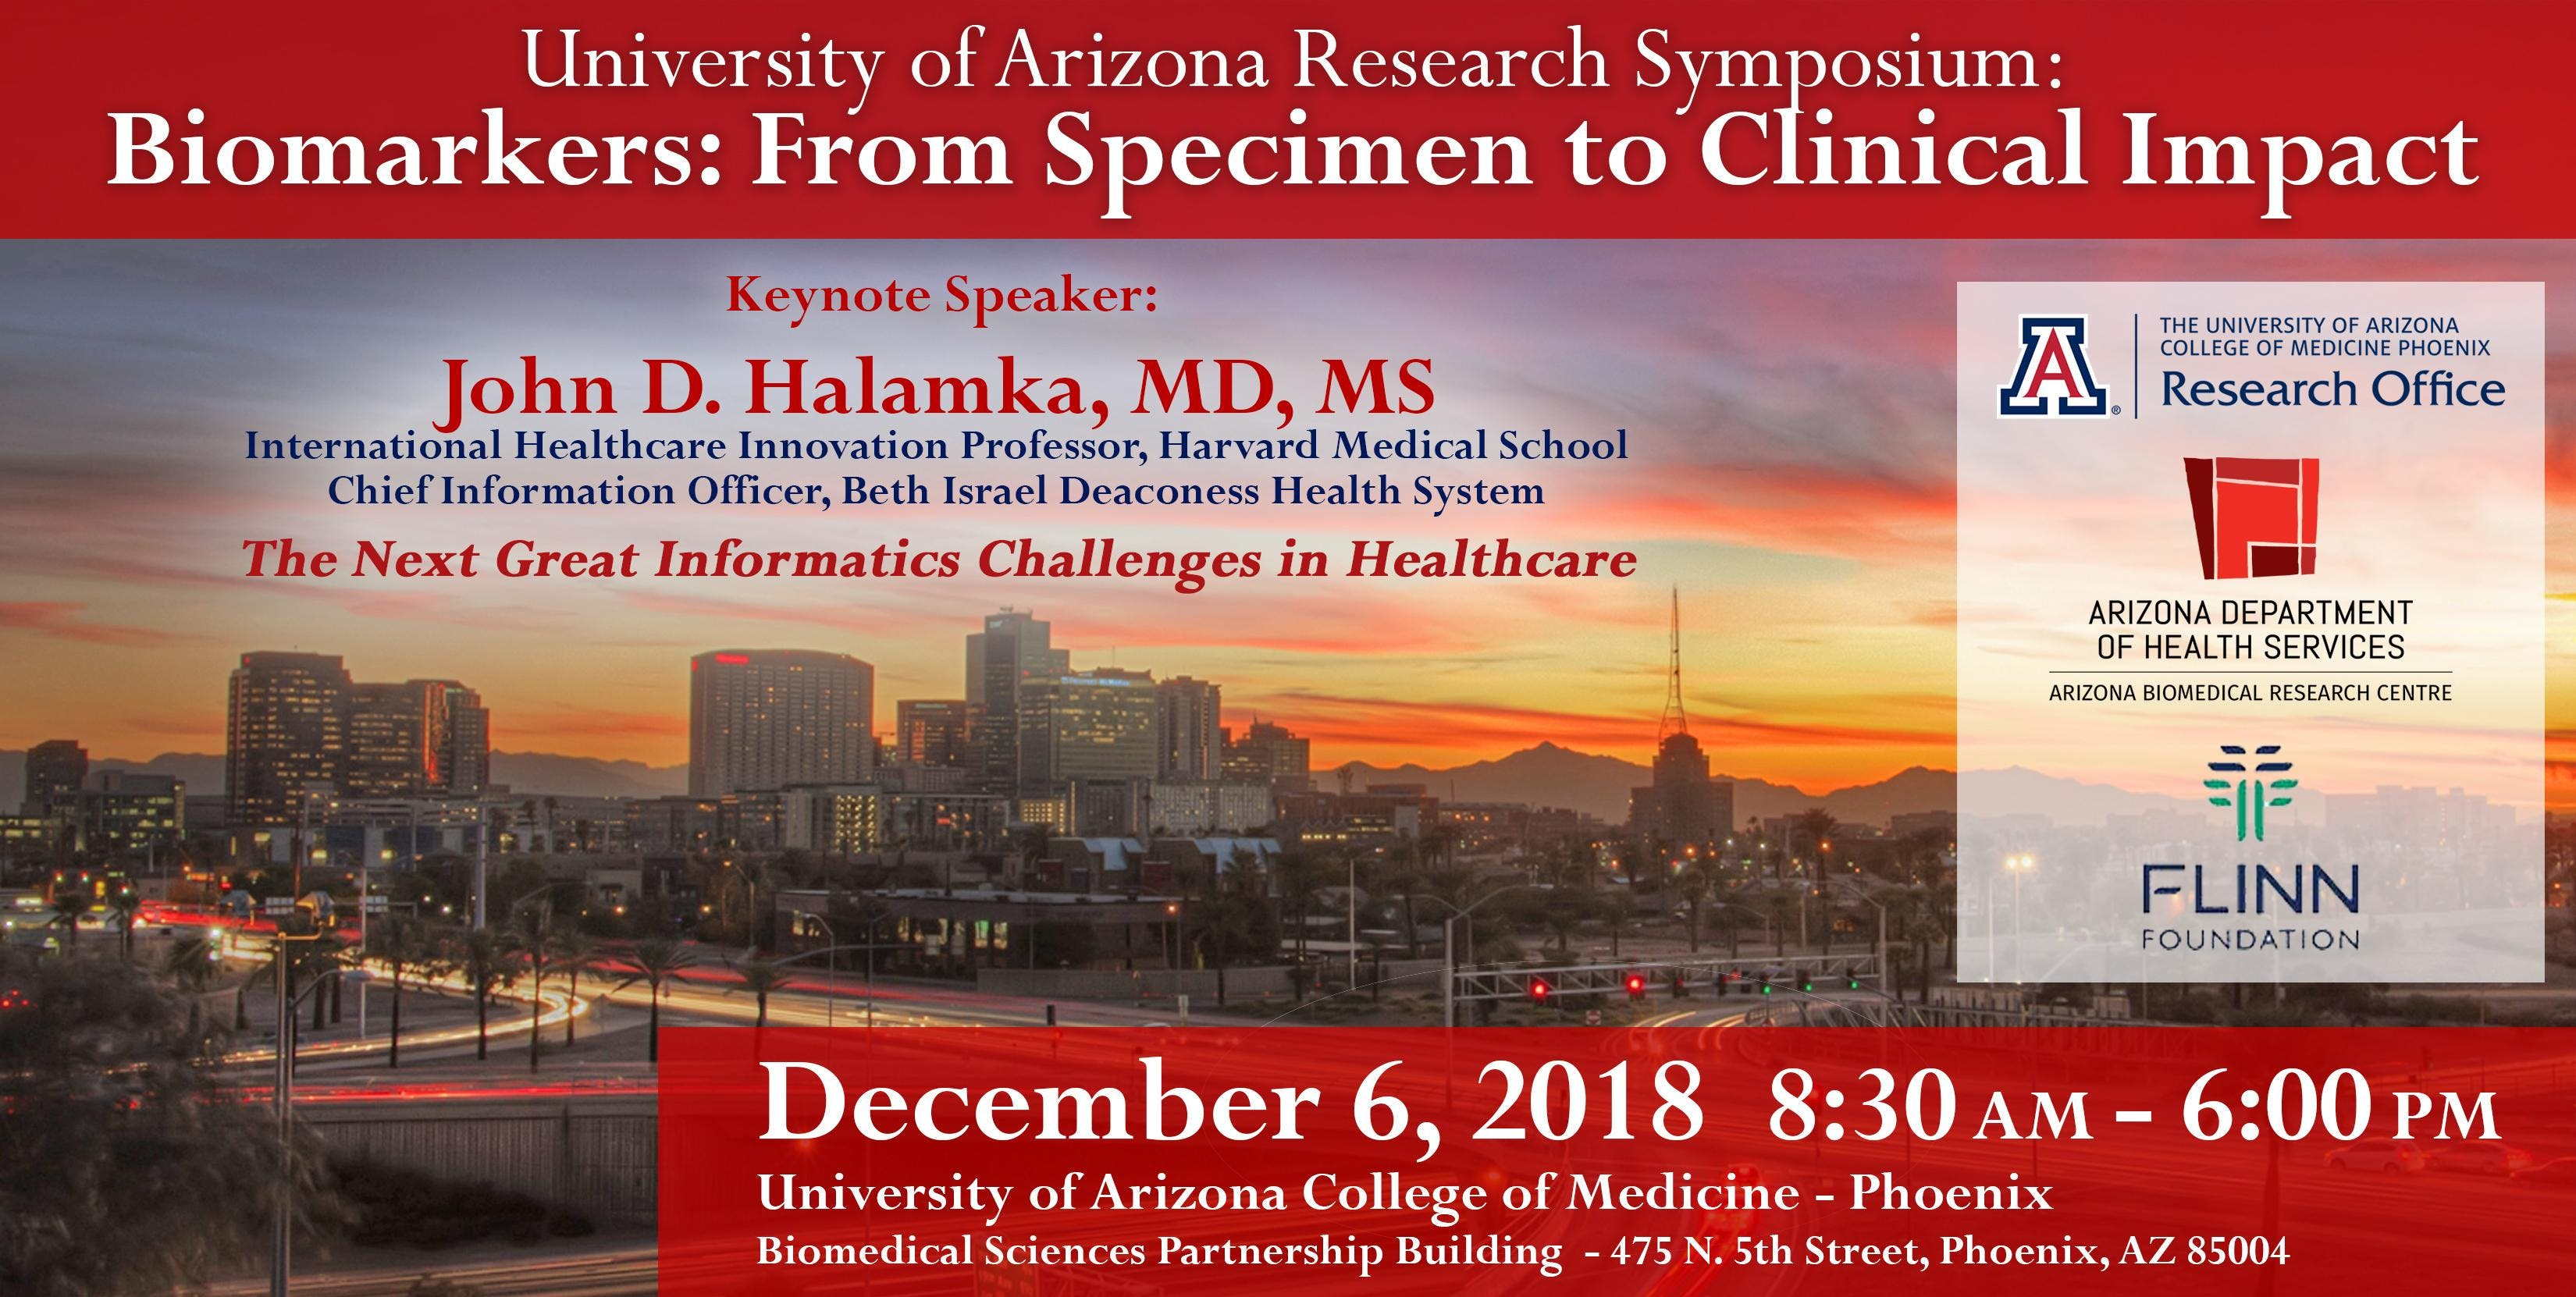 Biomarkers: From Specimen to Clinical Impact - University of Arizona Research Symposium